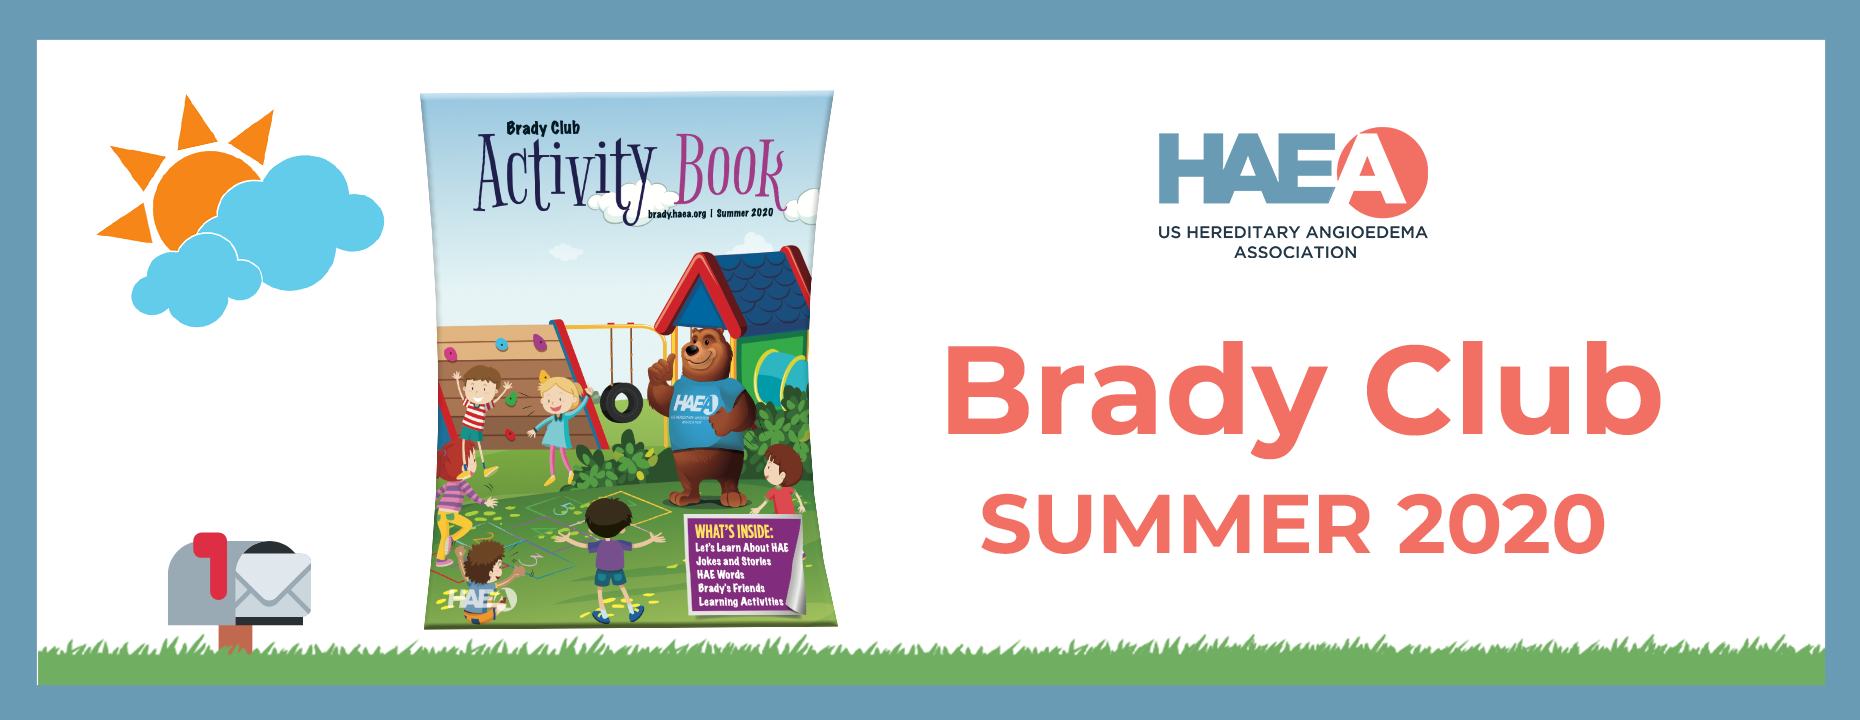 Brady Club - Summer 2020 Activity Book